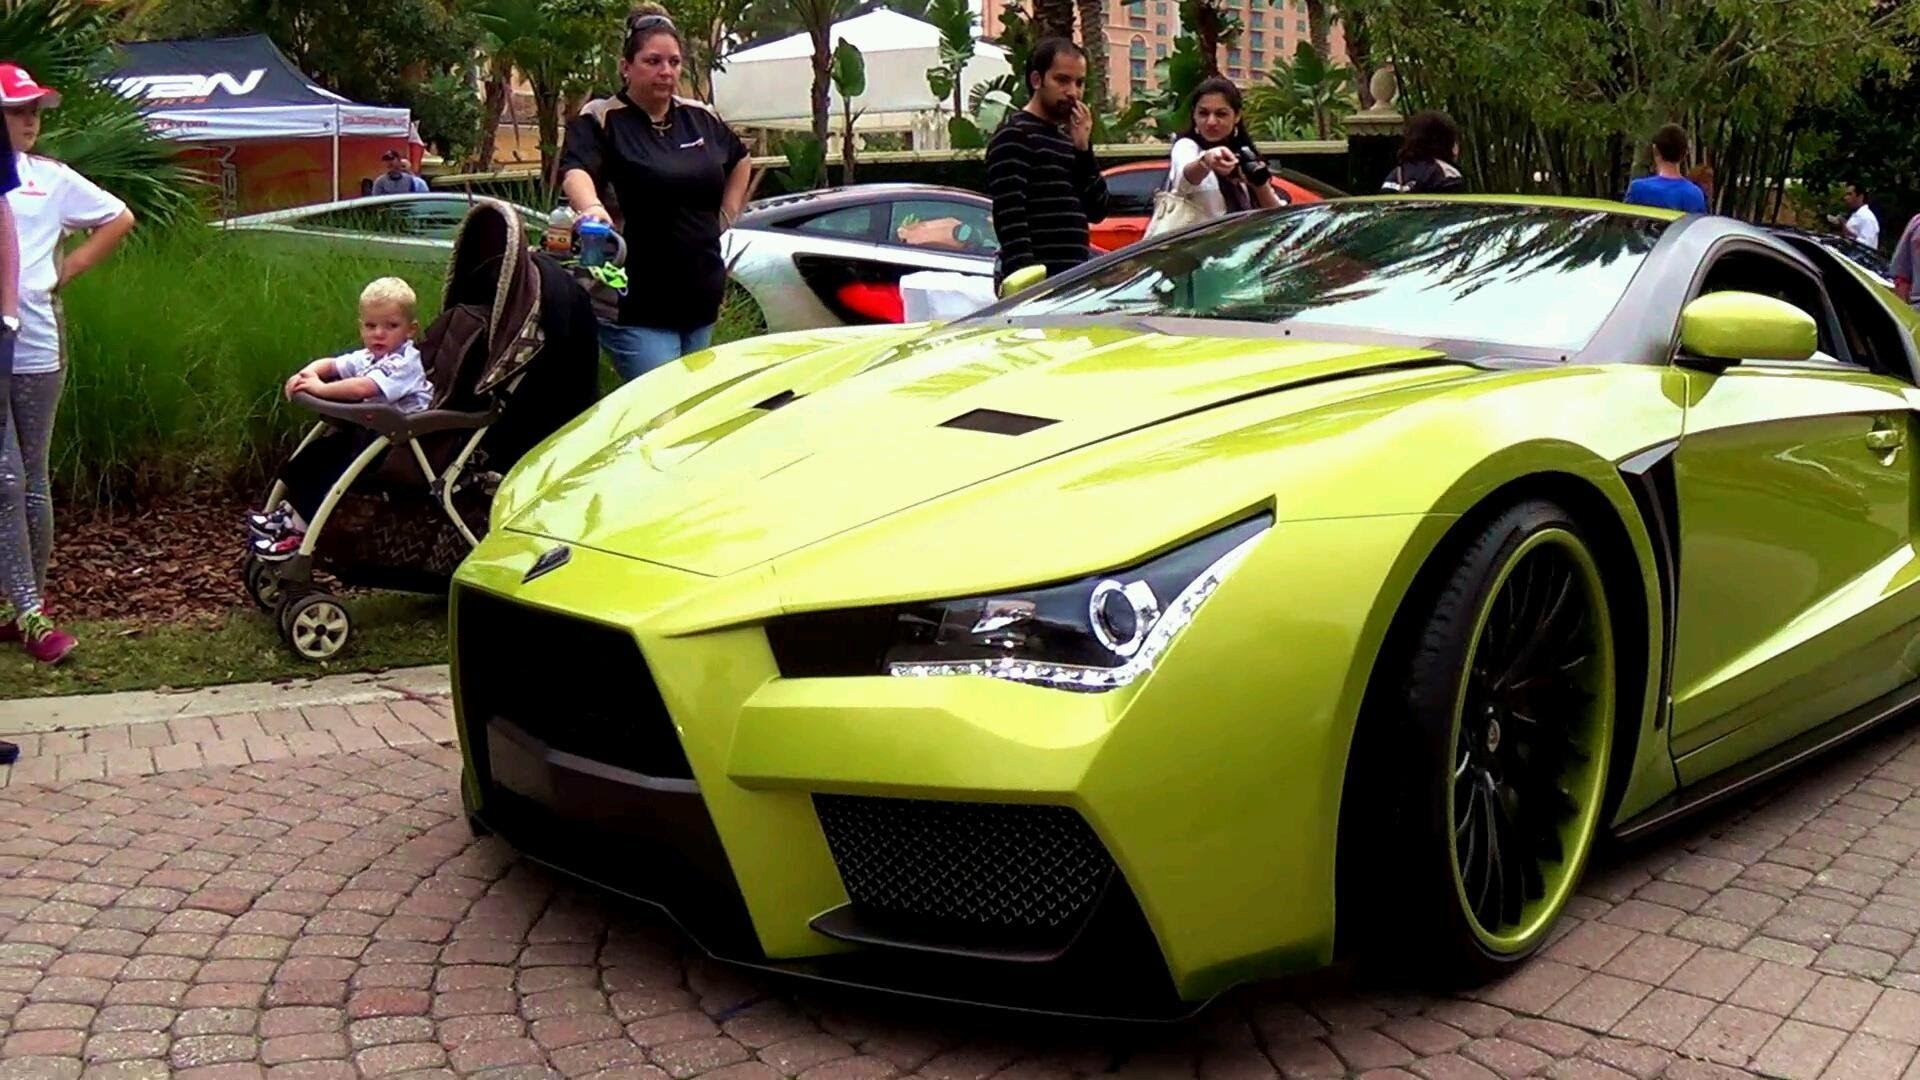 4k Wallpapers Exotic Super Sports Cars Infinity Cars News Vaydor Infinity Total Body Conversion